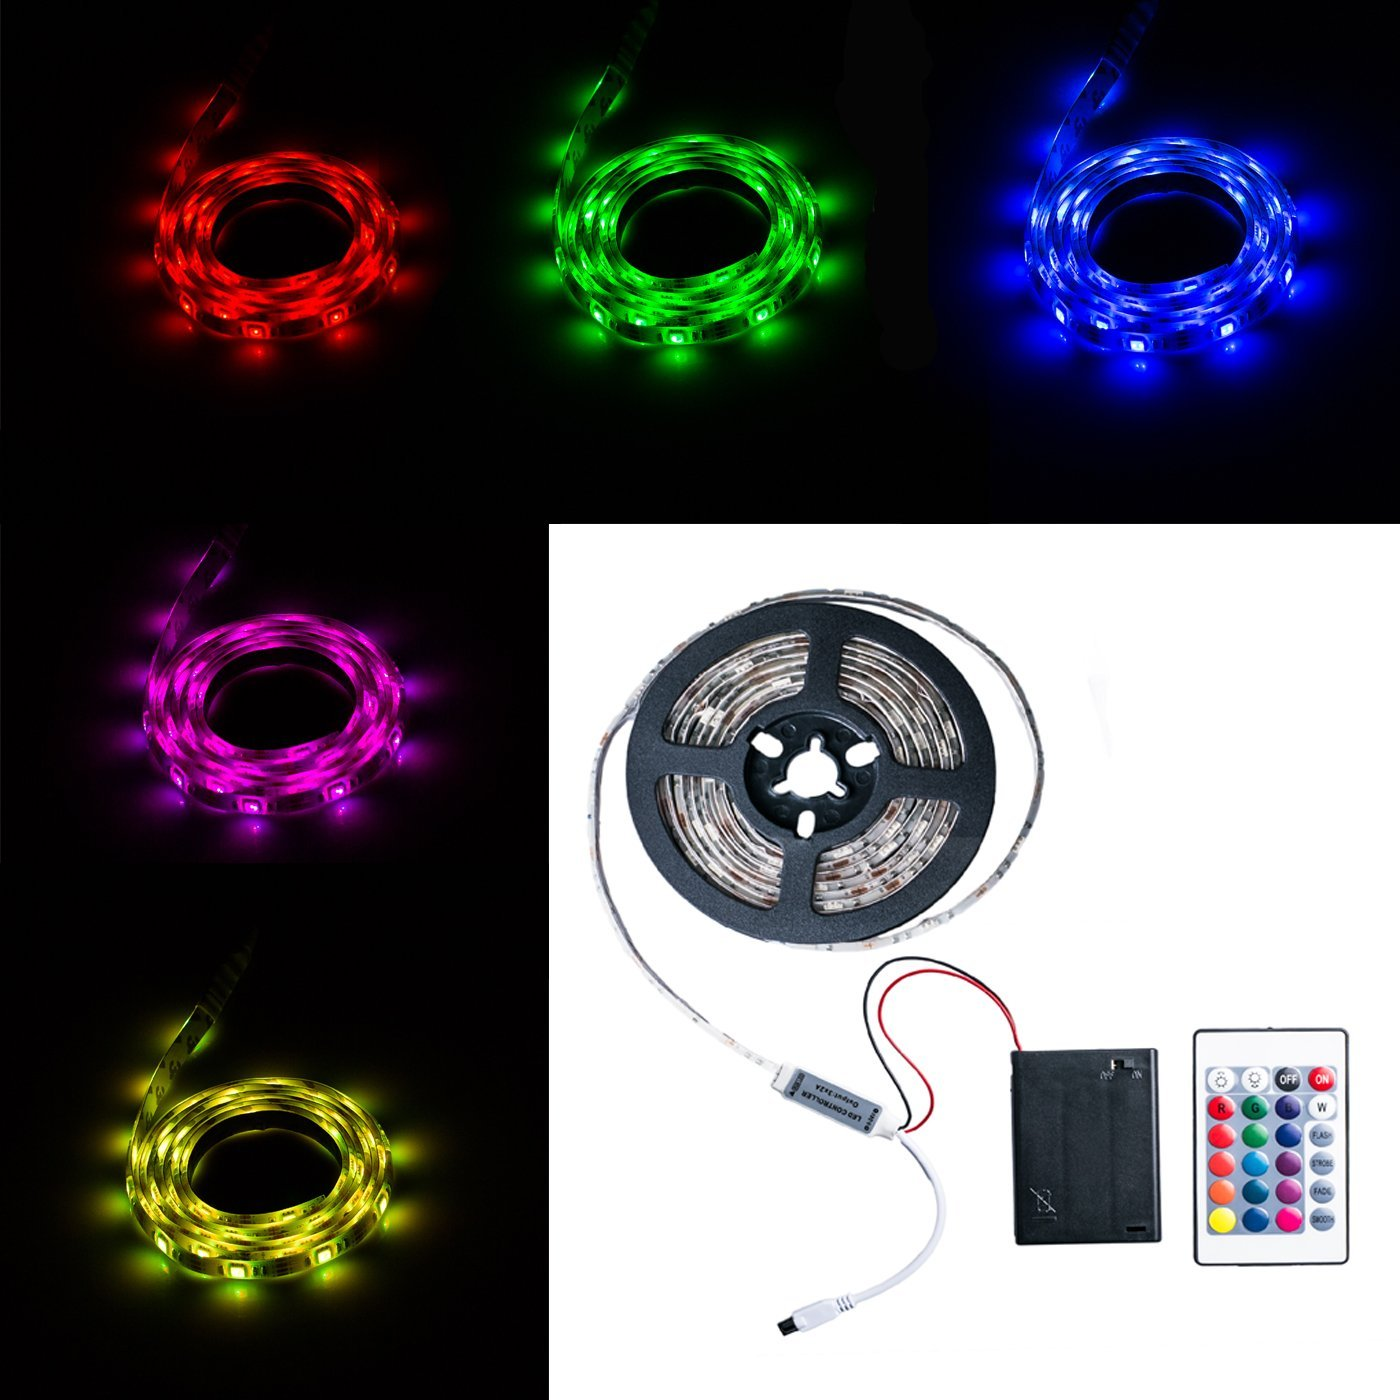 Battery Powered Led Strip Lights,Geekeep Waterproof Flexible LED Light Strips SMD 5050 LED Ribbon Light Mood Light (1M/3.28ft, RGB+Remote Control)